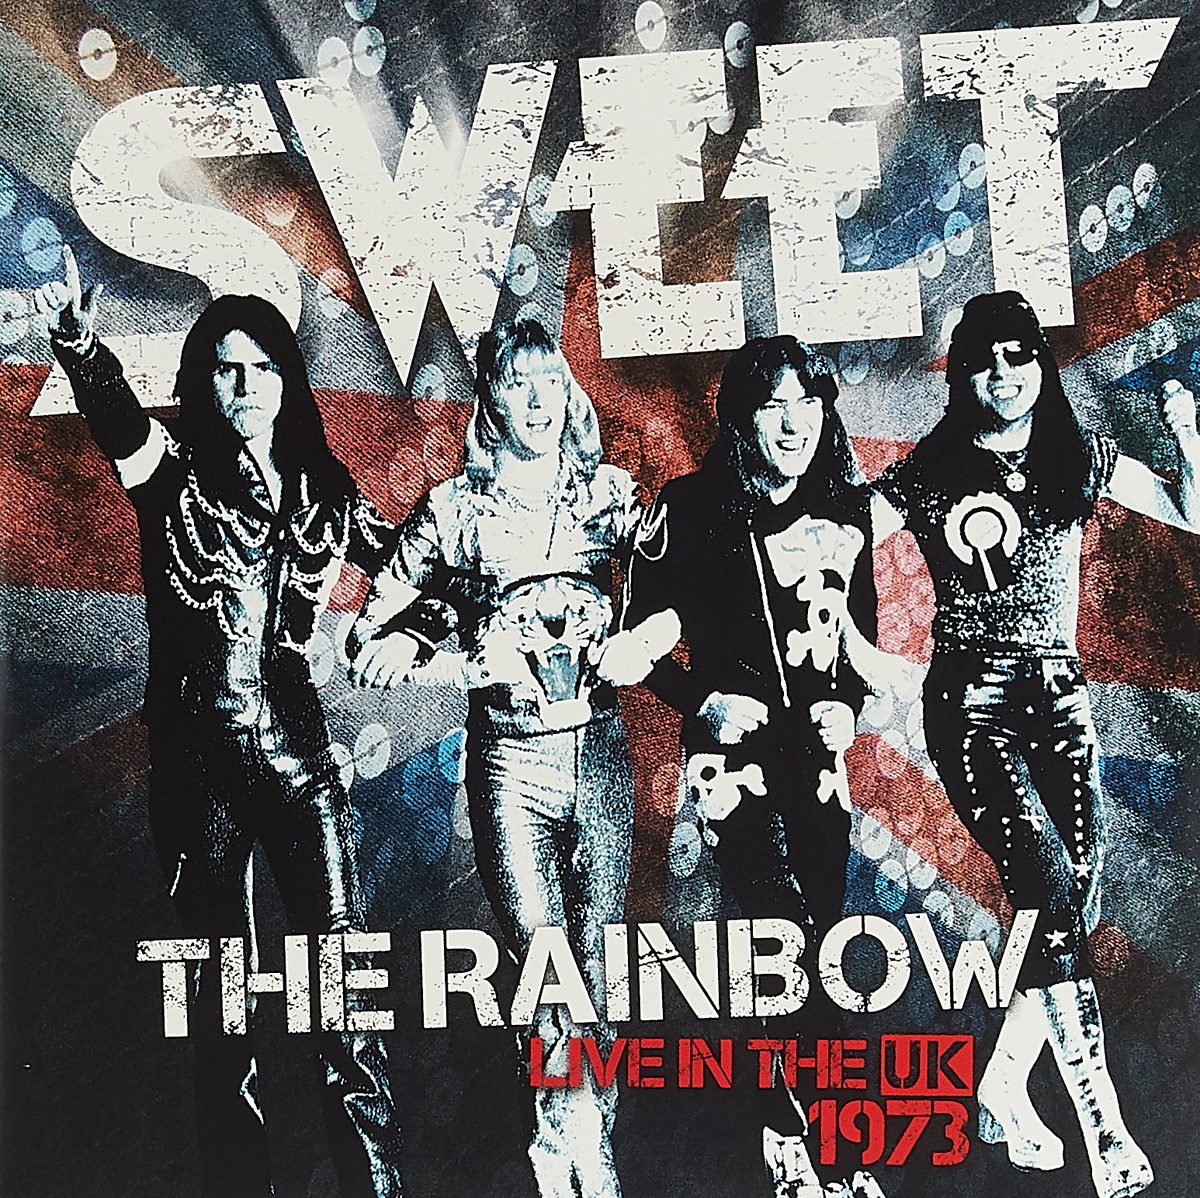 Sweet Sweet. The Rainbow (Sweet Live In The UK) (New Vinyl Edition) (2 LP) ракетка для пинг понга stiga 1096jw yaosir 7 6 sense7 6